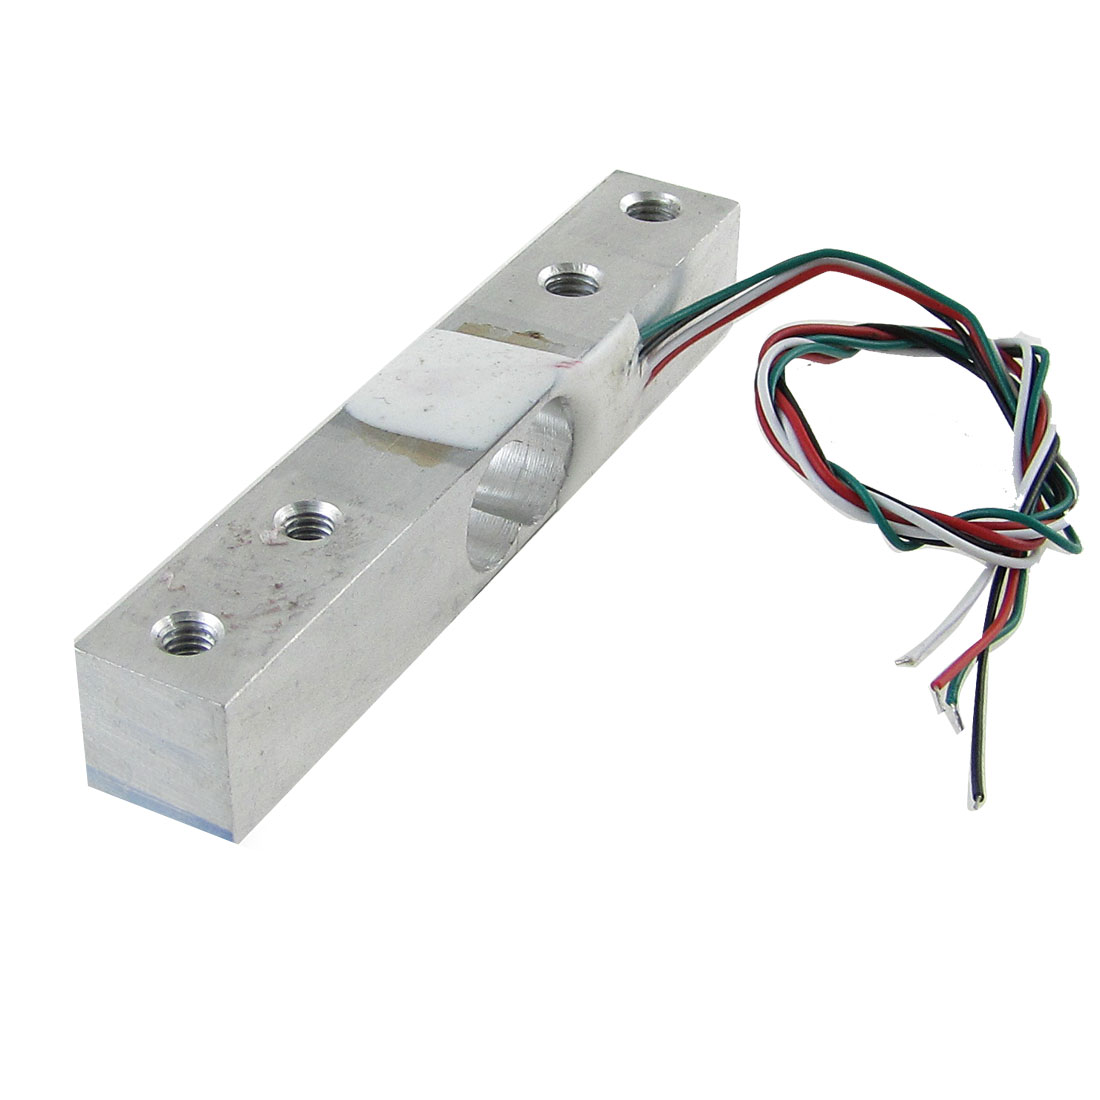 22 lbs 10Kg Aluminium Alloy Hopper Scale Load Cell Transducer